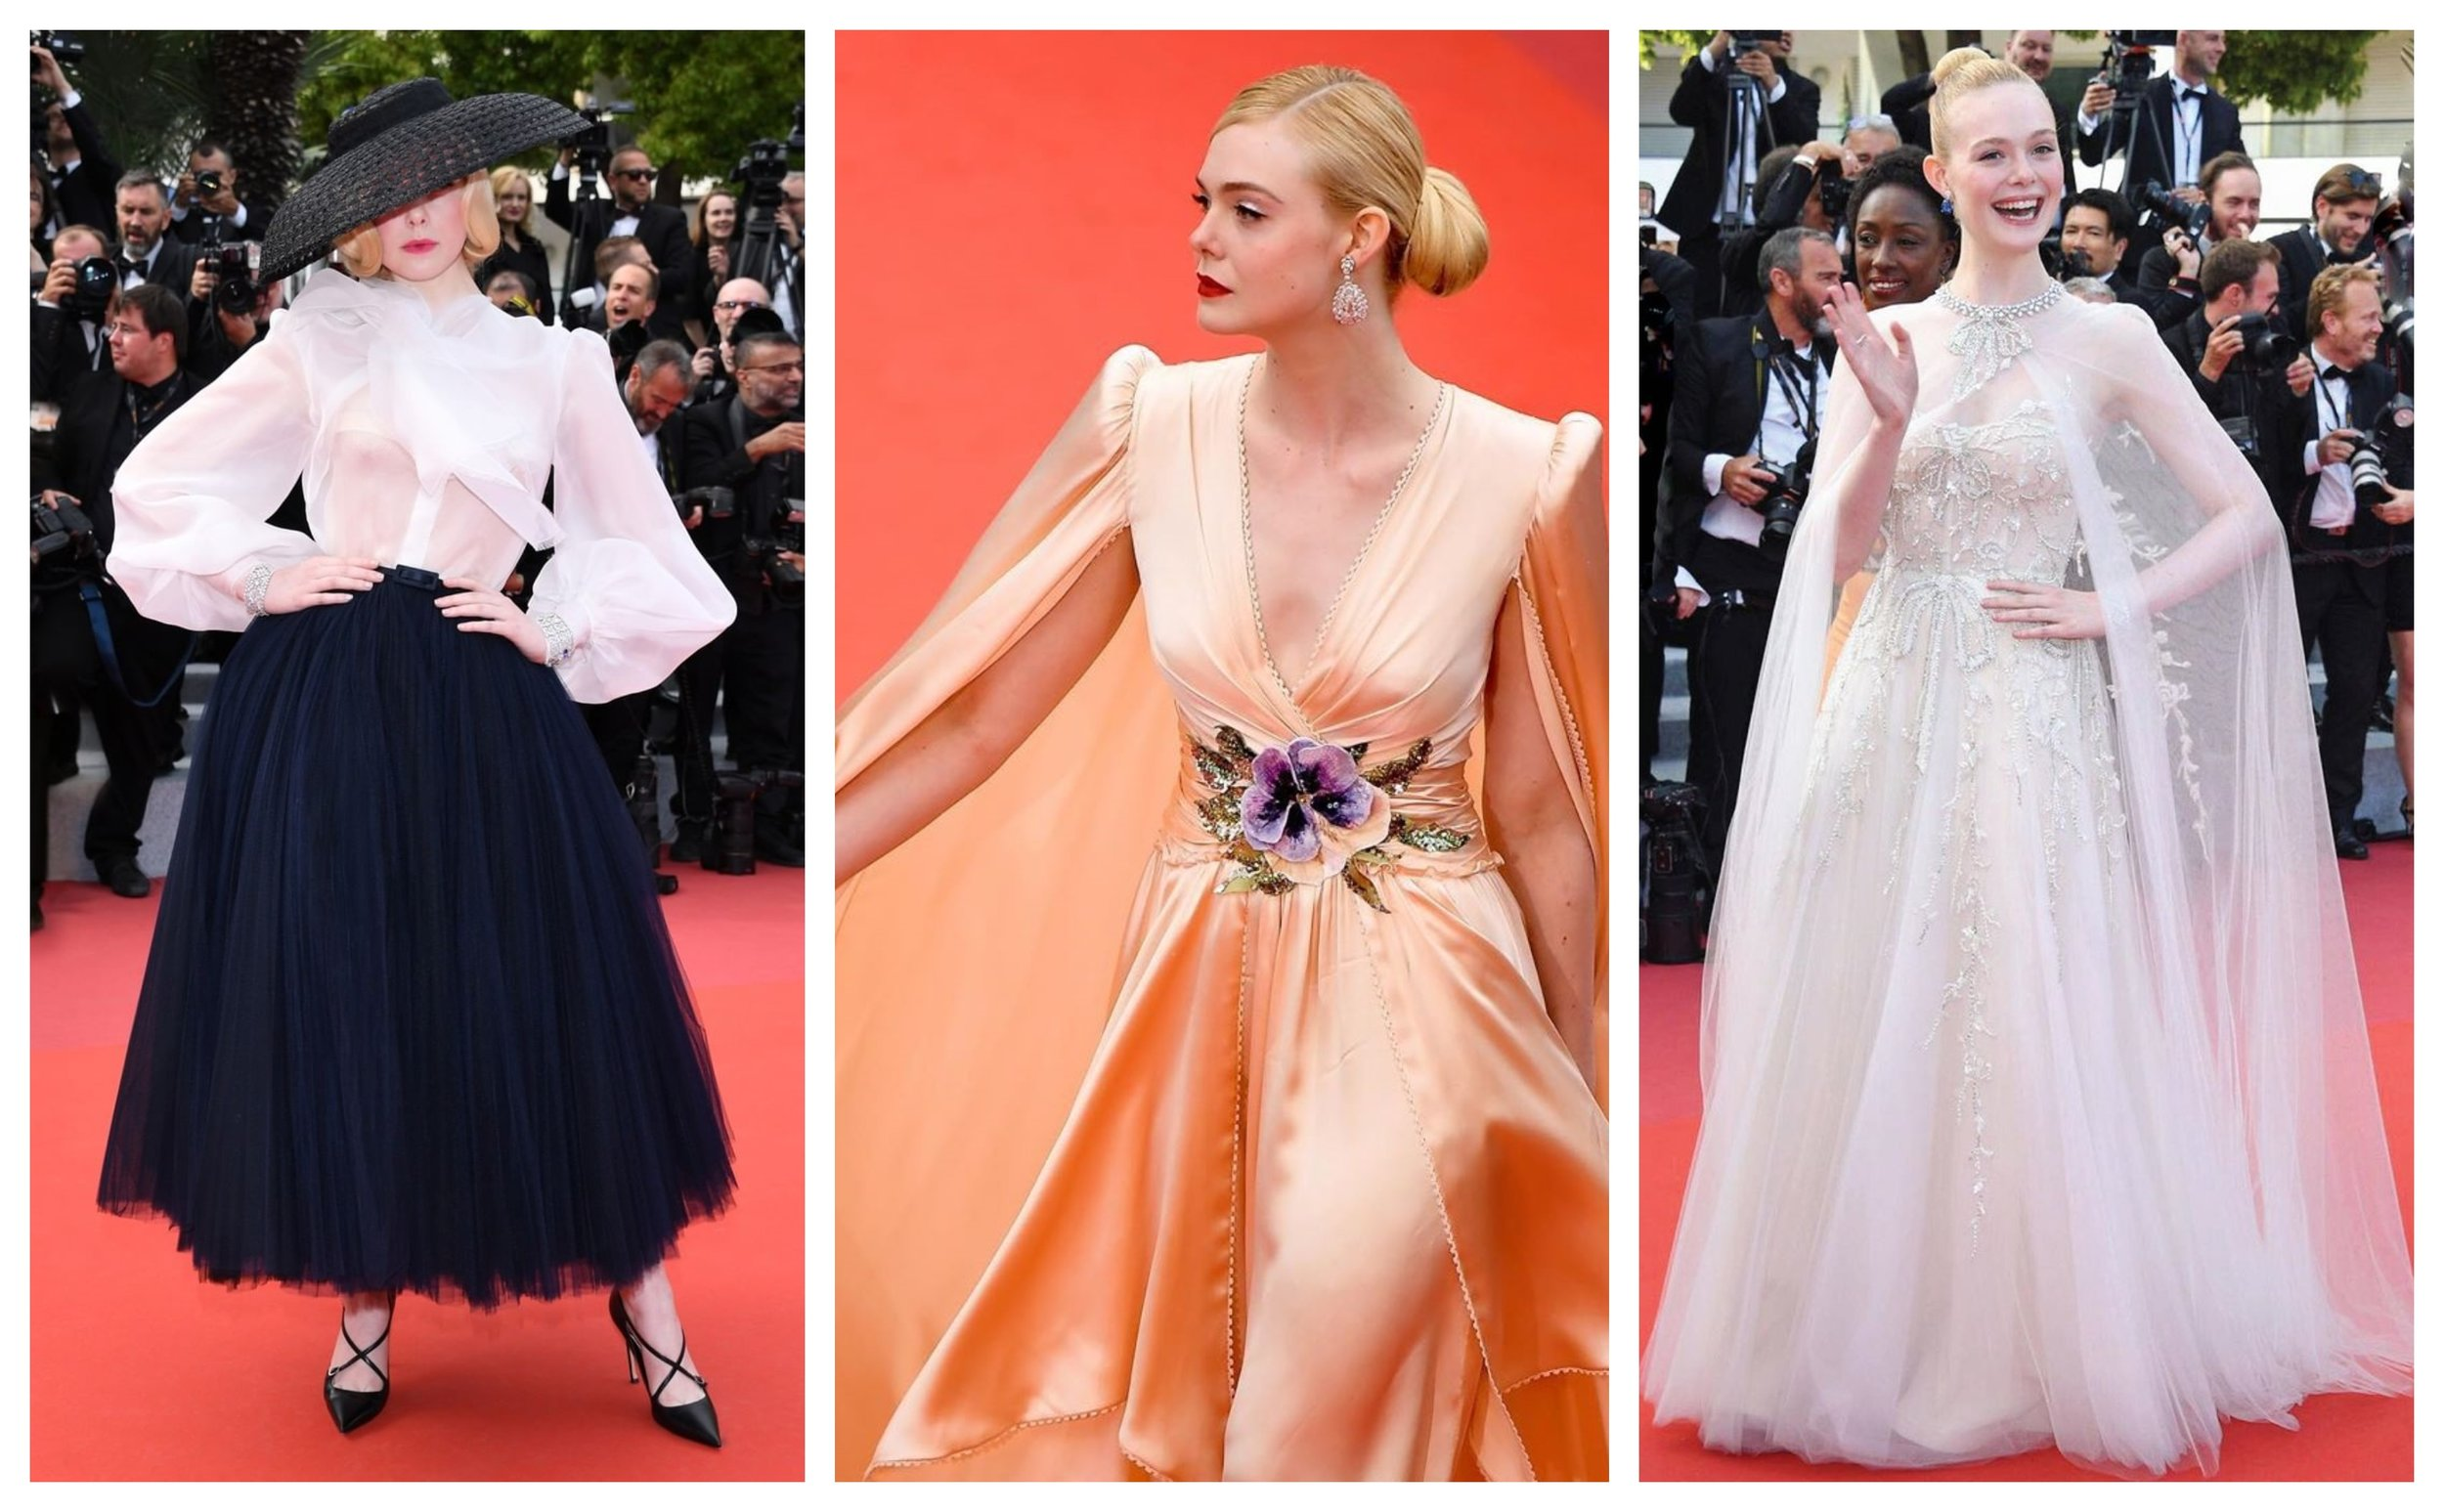 Photos taken from: Dior, Festival de Cannes, and Reem Acra's Instagram.